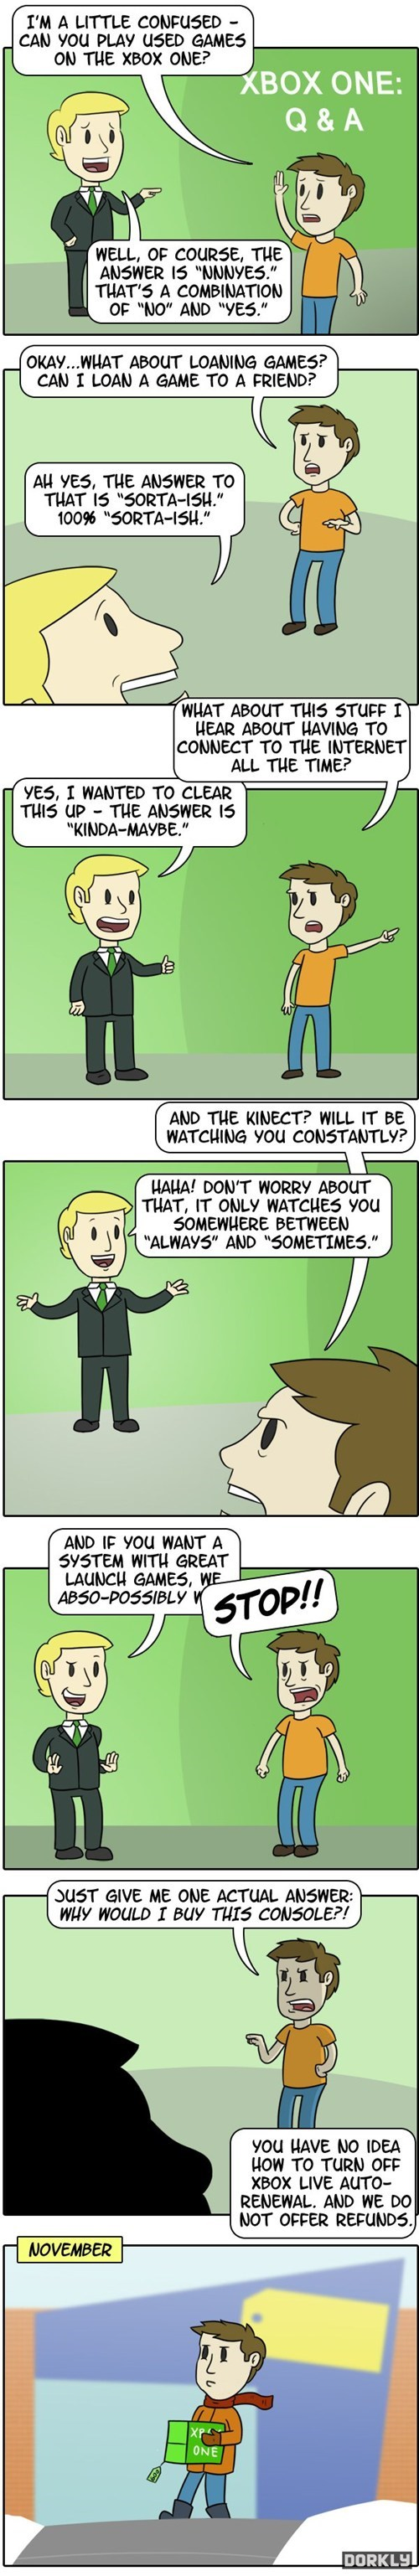 E32013,dorkly,comics,xbox one